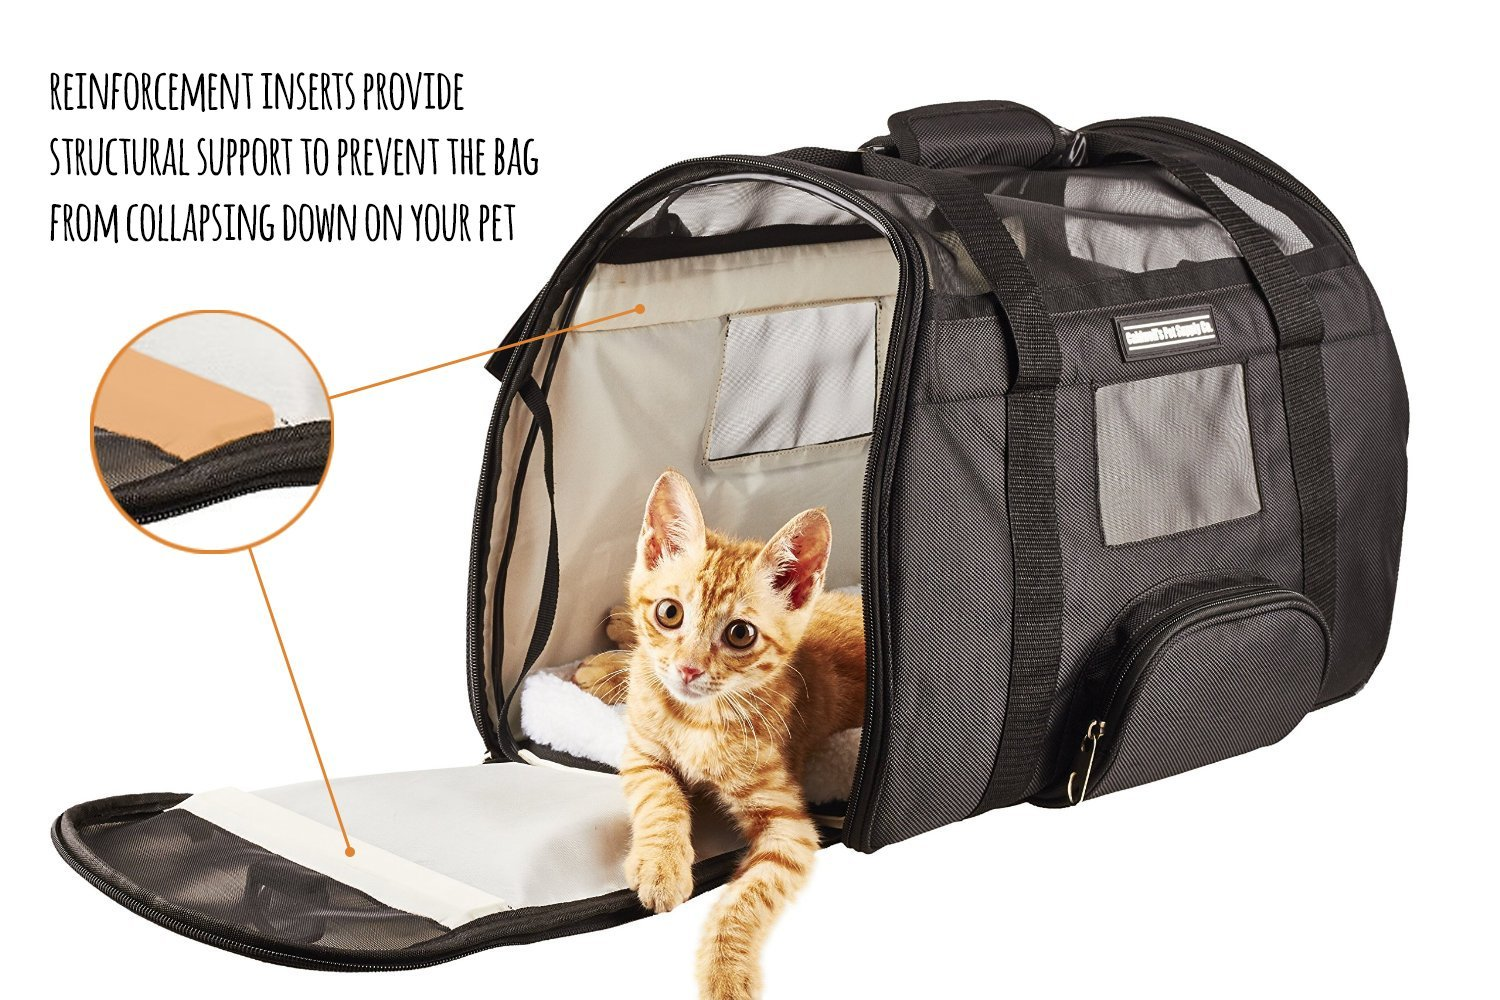 Airline Approved Pet Carrier >> Caldwell's Pets Supply Co. Deluxe Soft-sided Airline ...